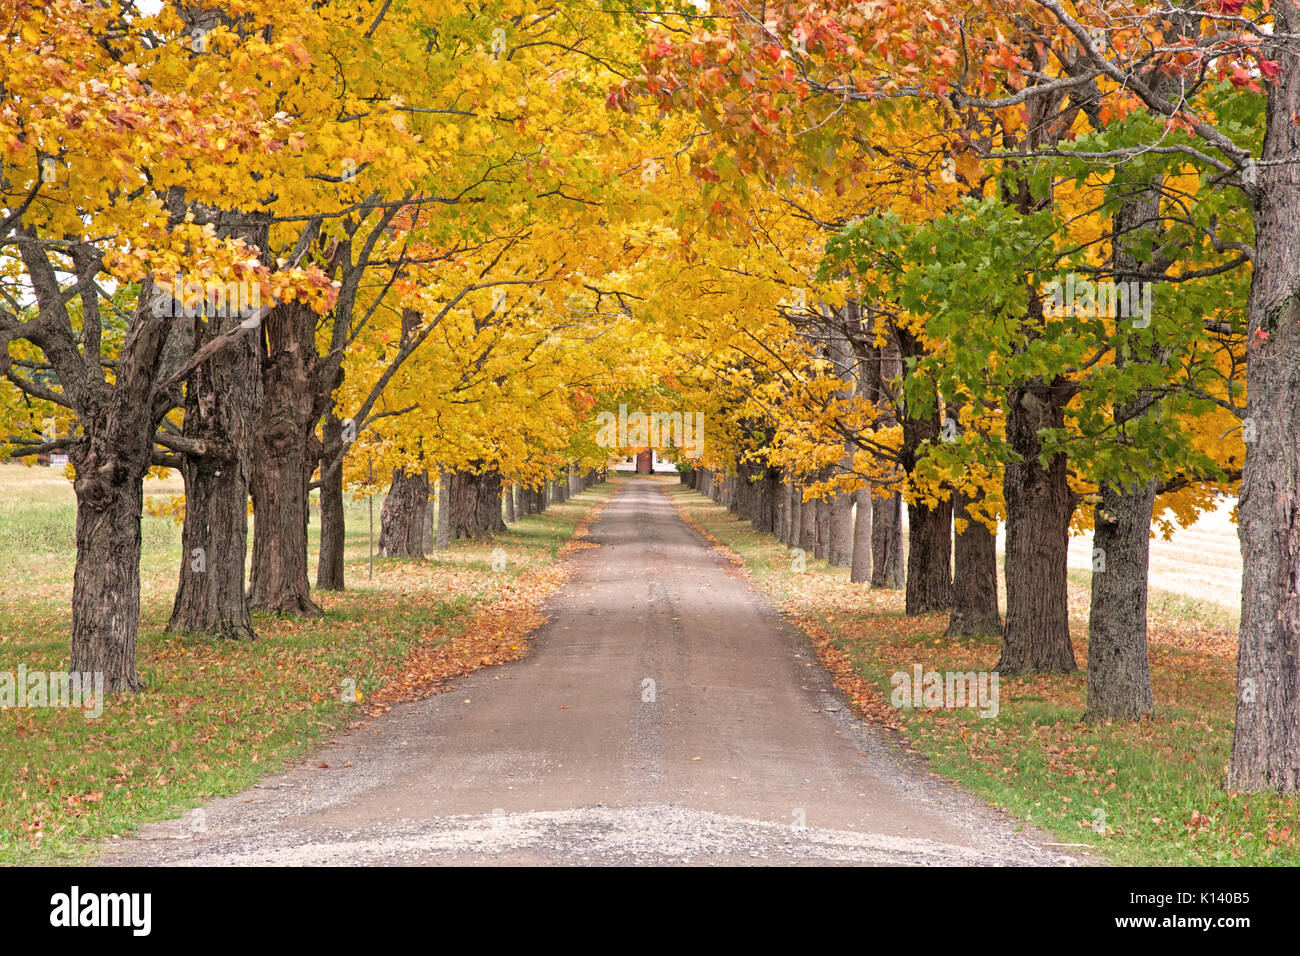 a long driveway with green red and yellow autumn trees lining the